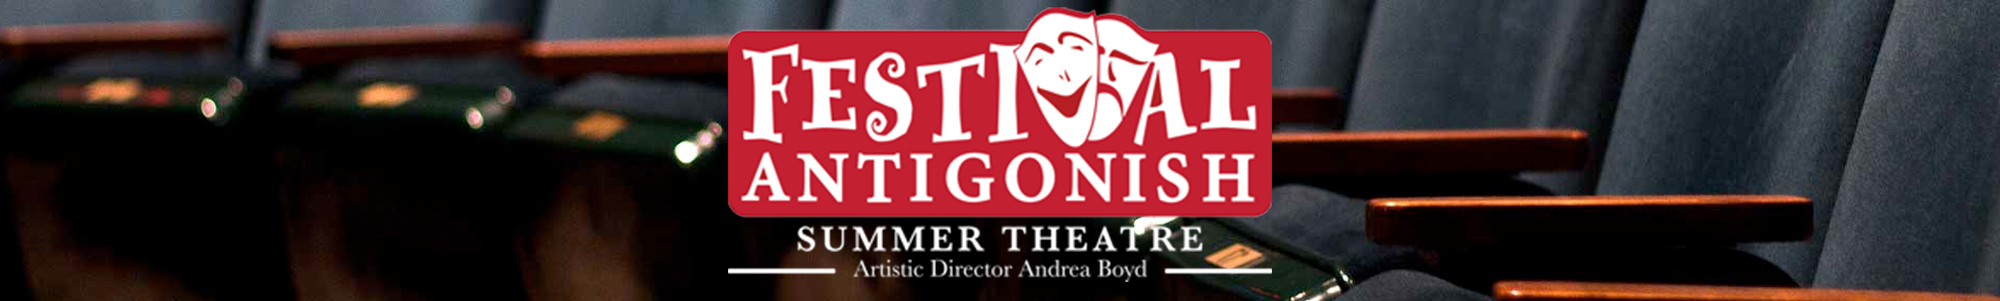 Festival Antigonish Summer Theatre | Ticketing